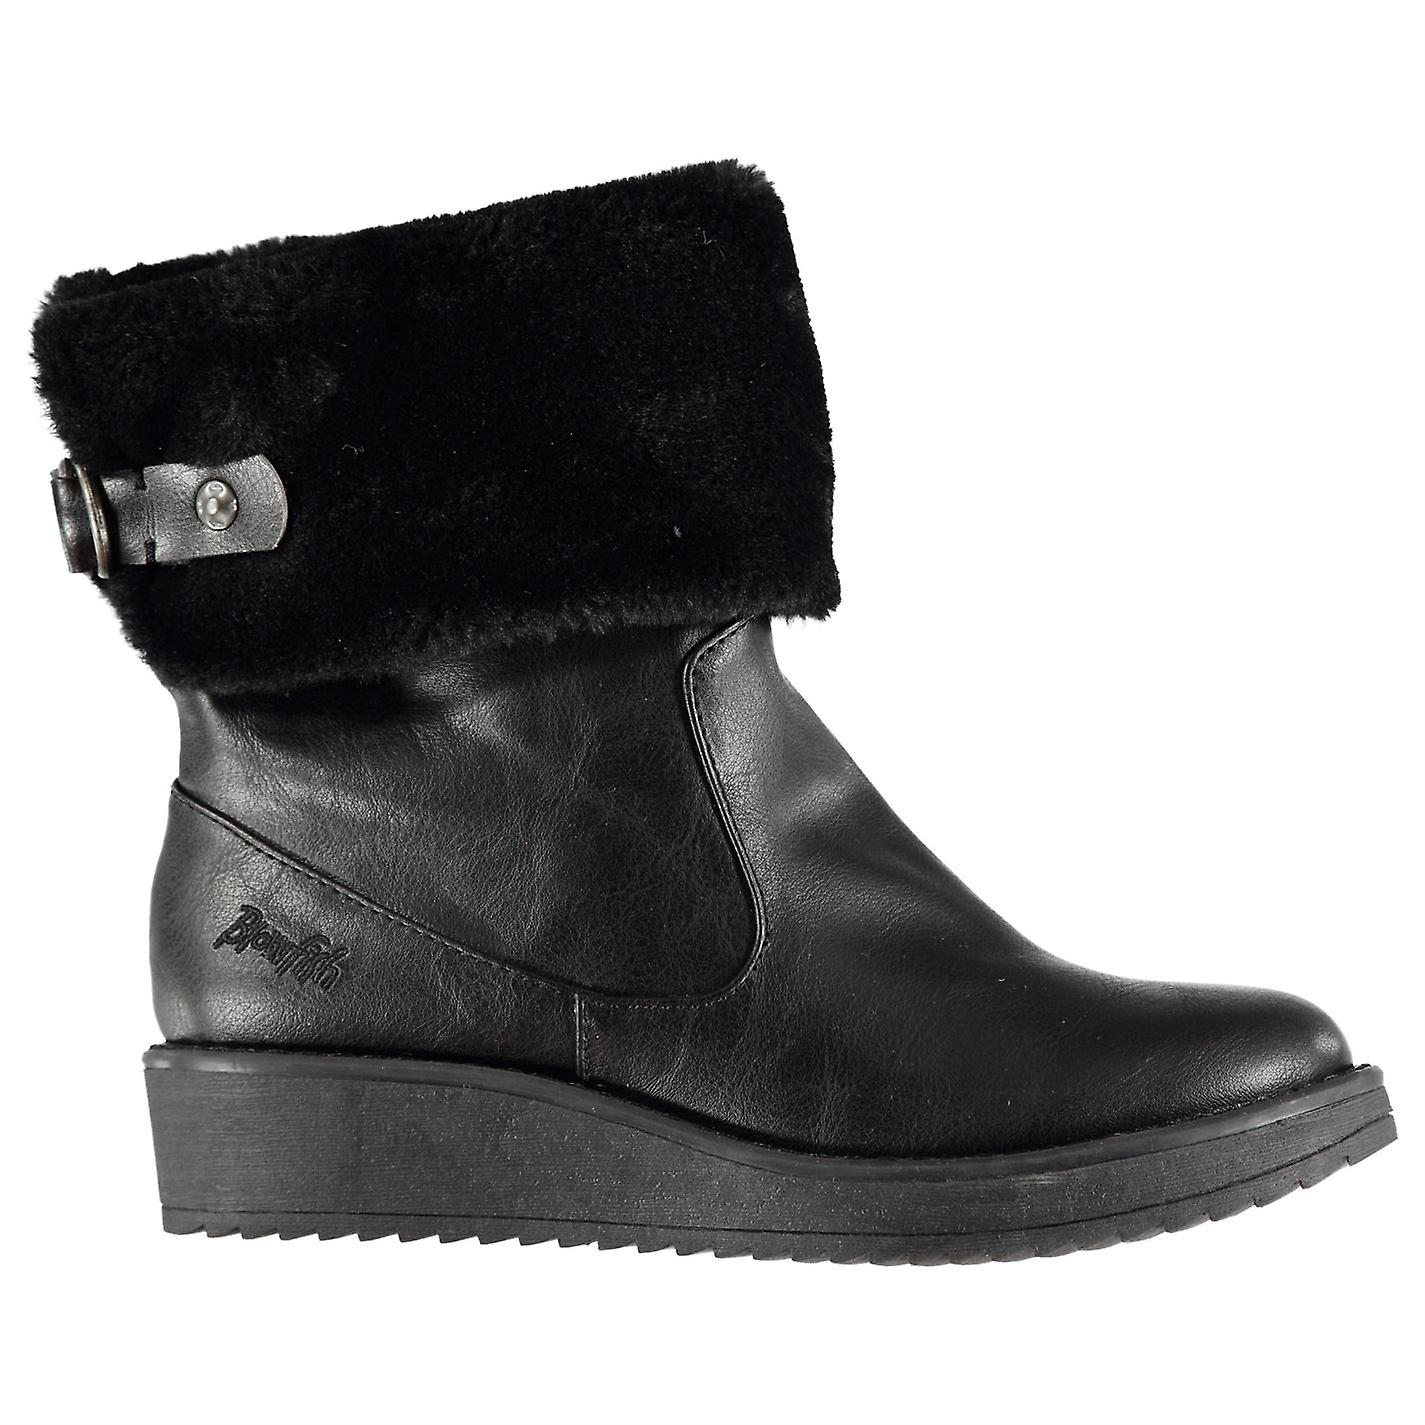 Blowfish Womens Clairey Ankle Boots zTFkk